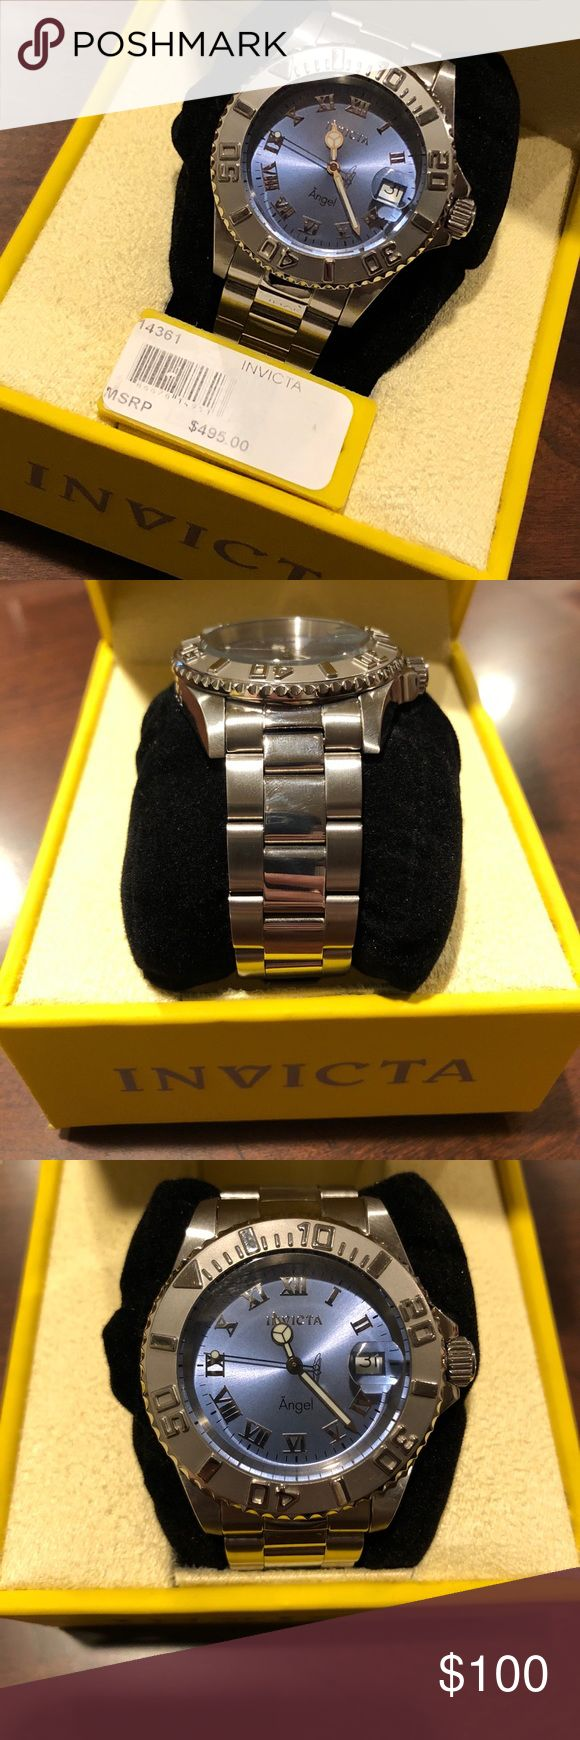 Women's Invicta Watch Stainless Steel band with a baby blue watch face. Equipped with a screw crown to prevent water infiltration. Battery powered. Extra links are available if wrist size needs increased. Invicta Jewelry